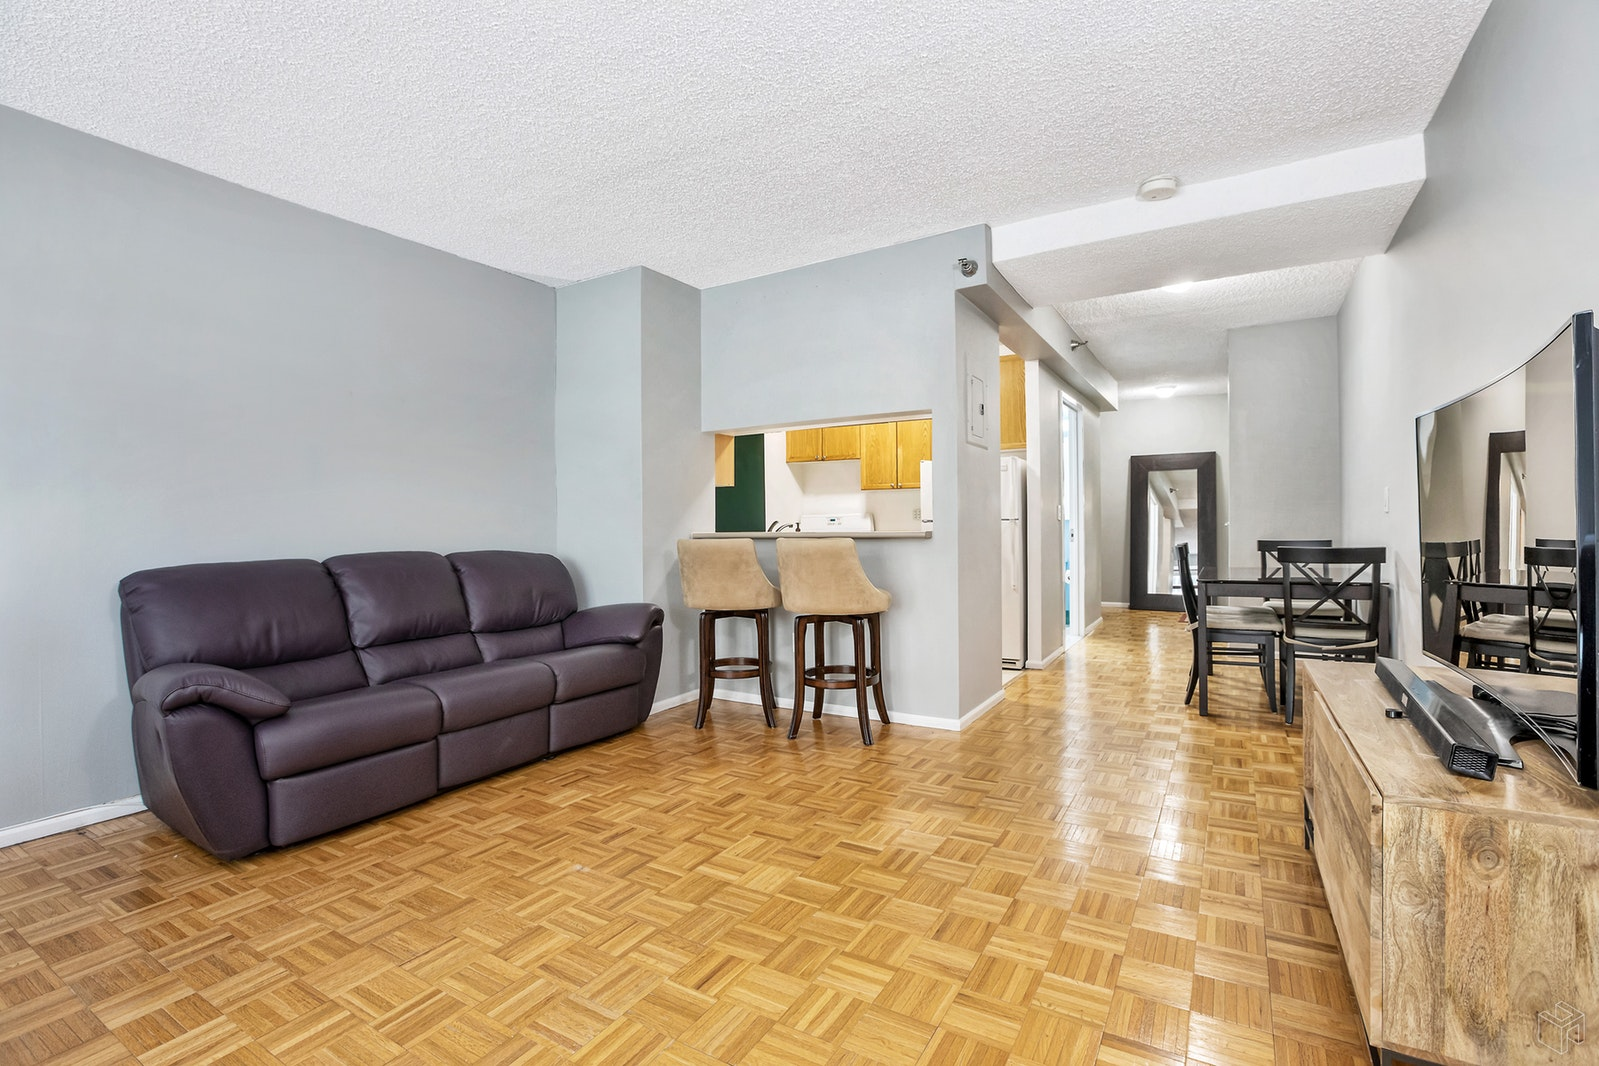 4 -74 48th Ave 2a, Long Island City, Queens, NY, 11109, $425,000, Property For Sale, Halstead Real Estate, Photo 2